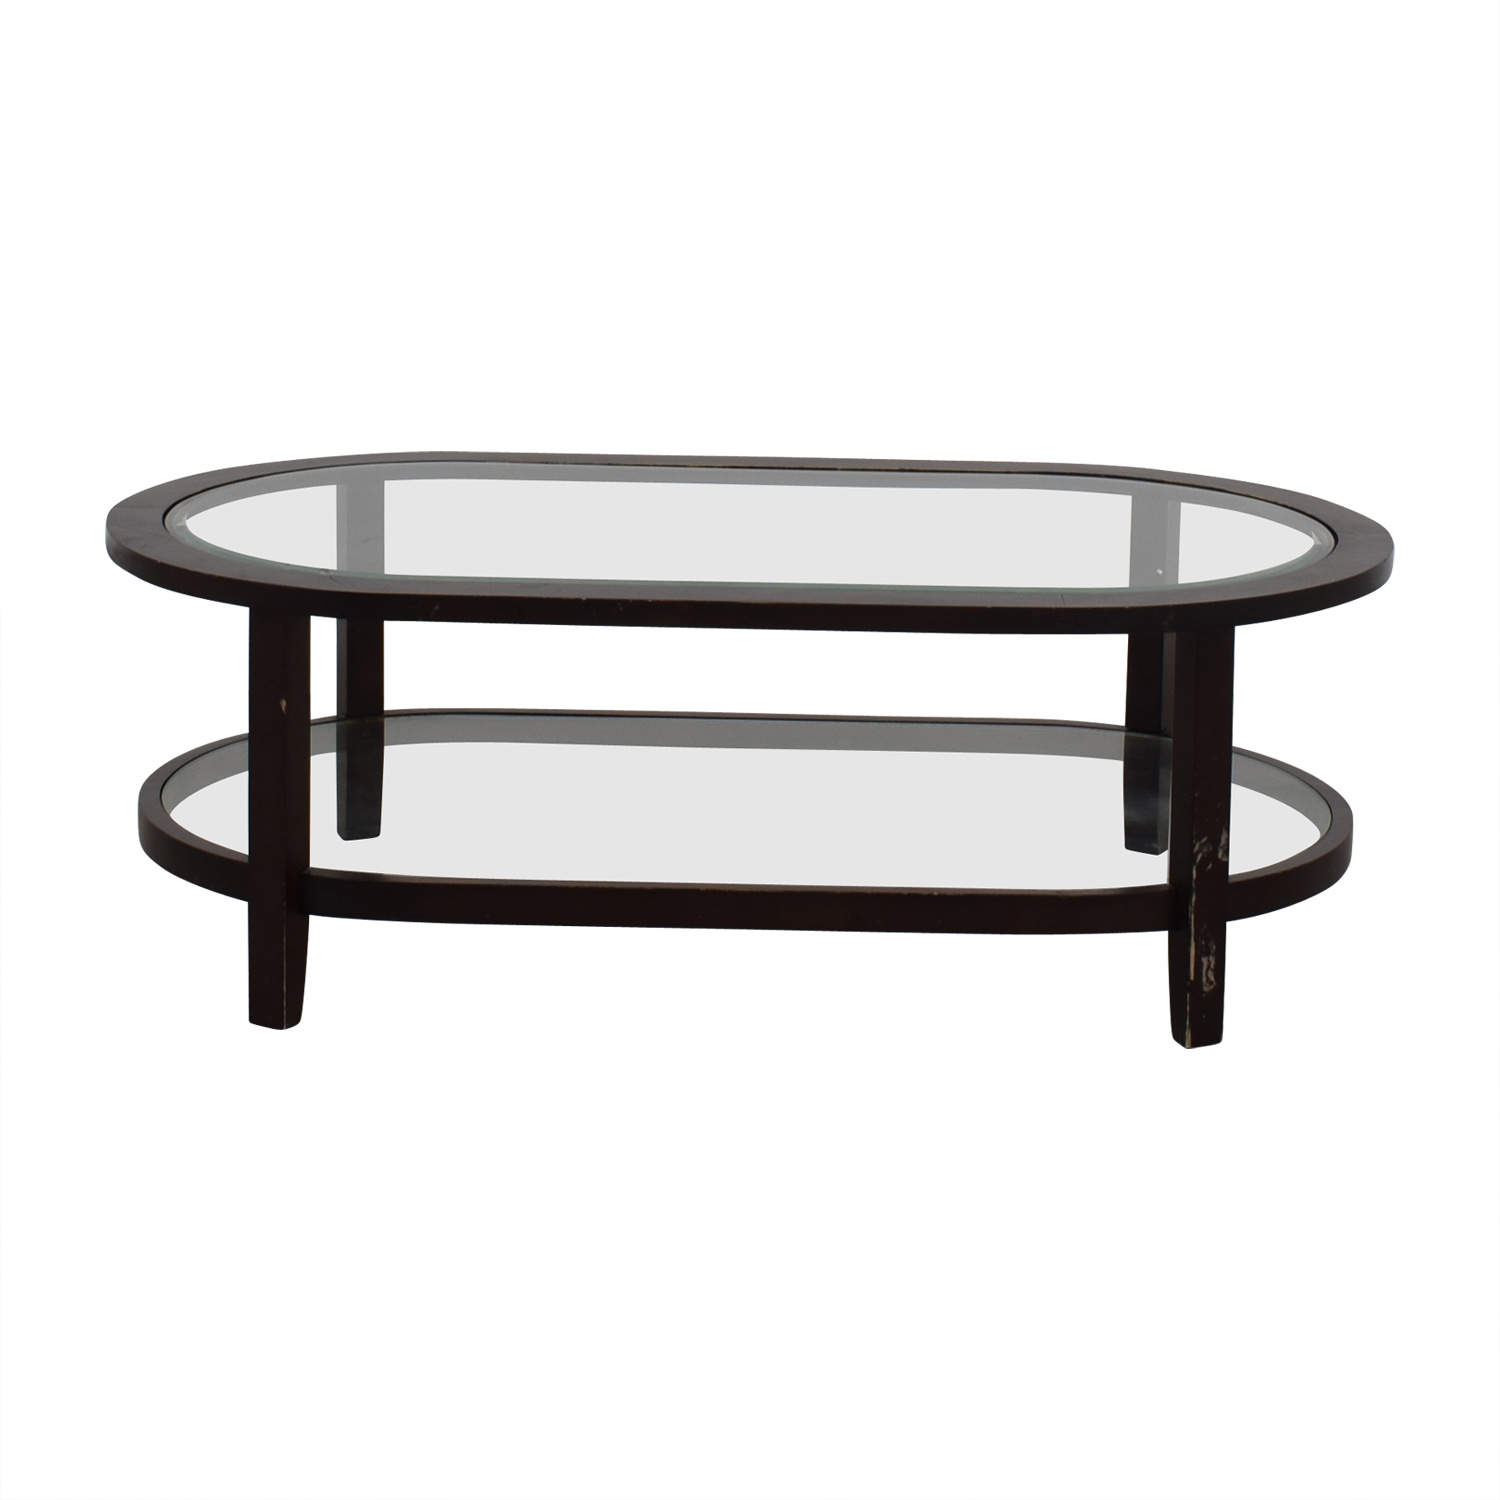 Crate & Barrel Crate & Barrel Oval Glass Coffee Table nyc